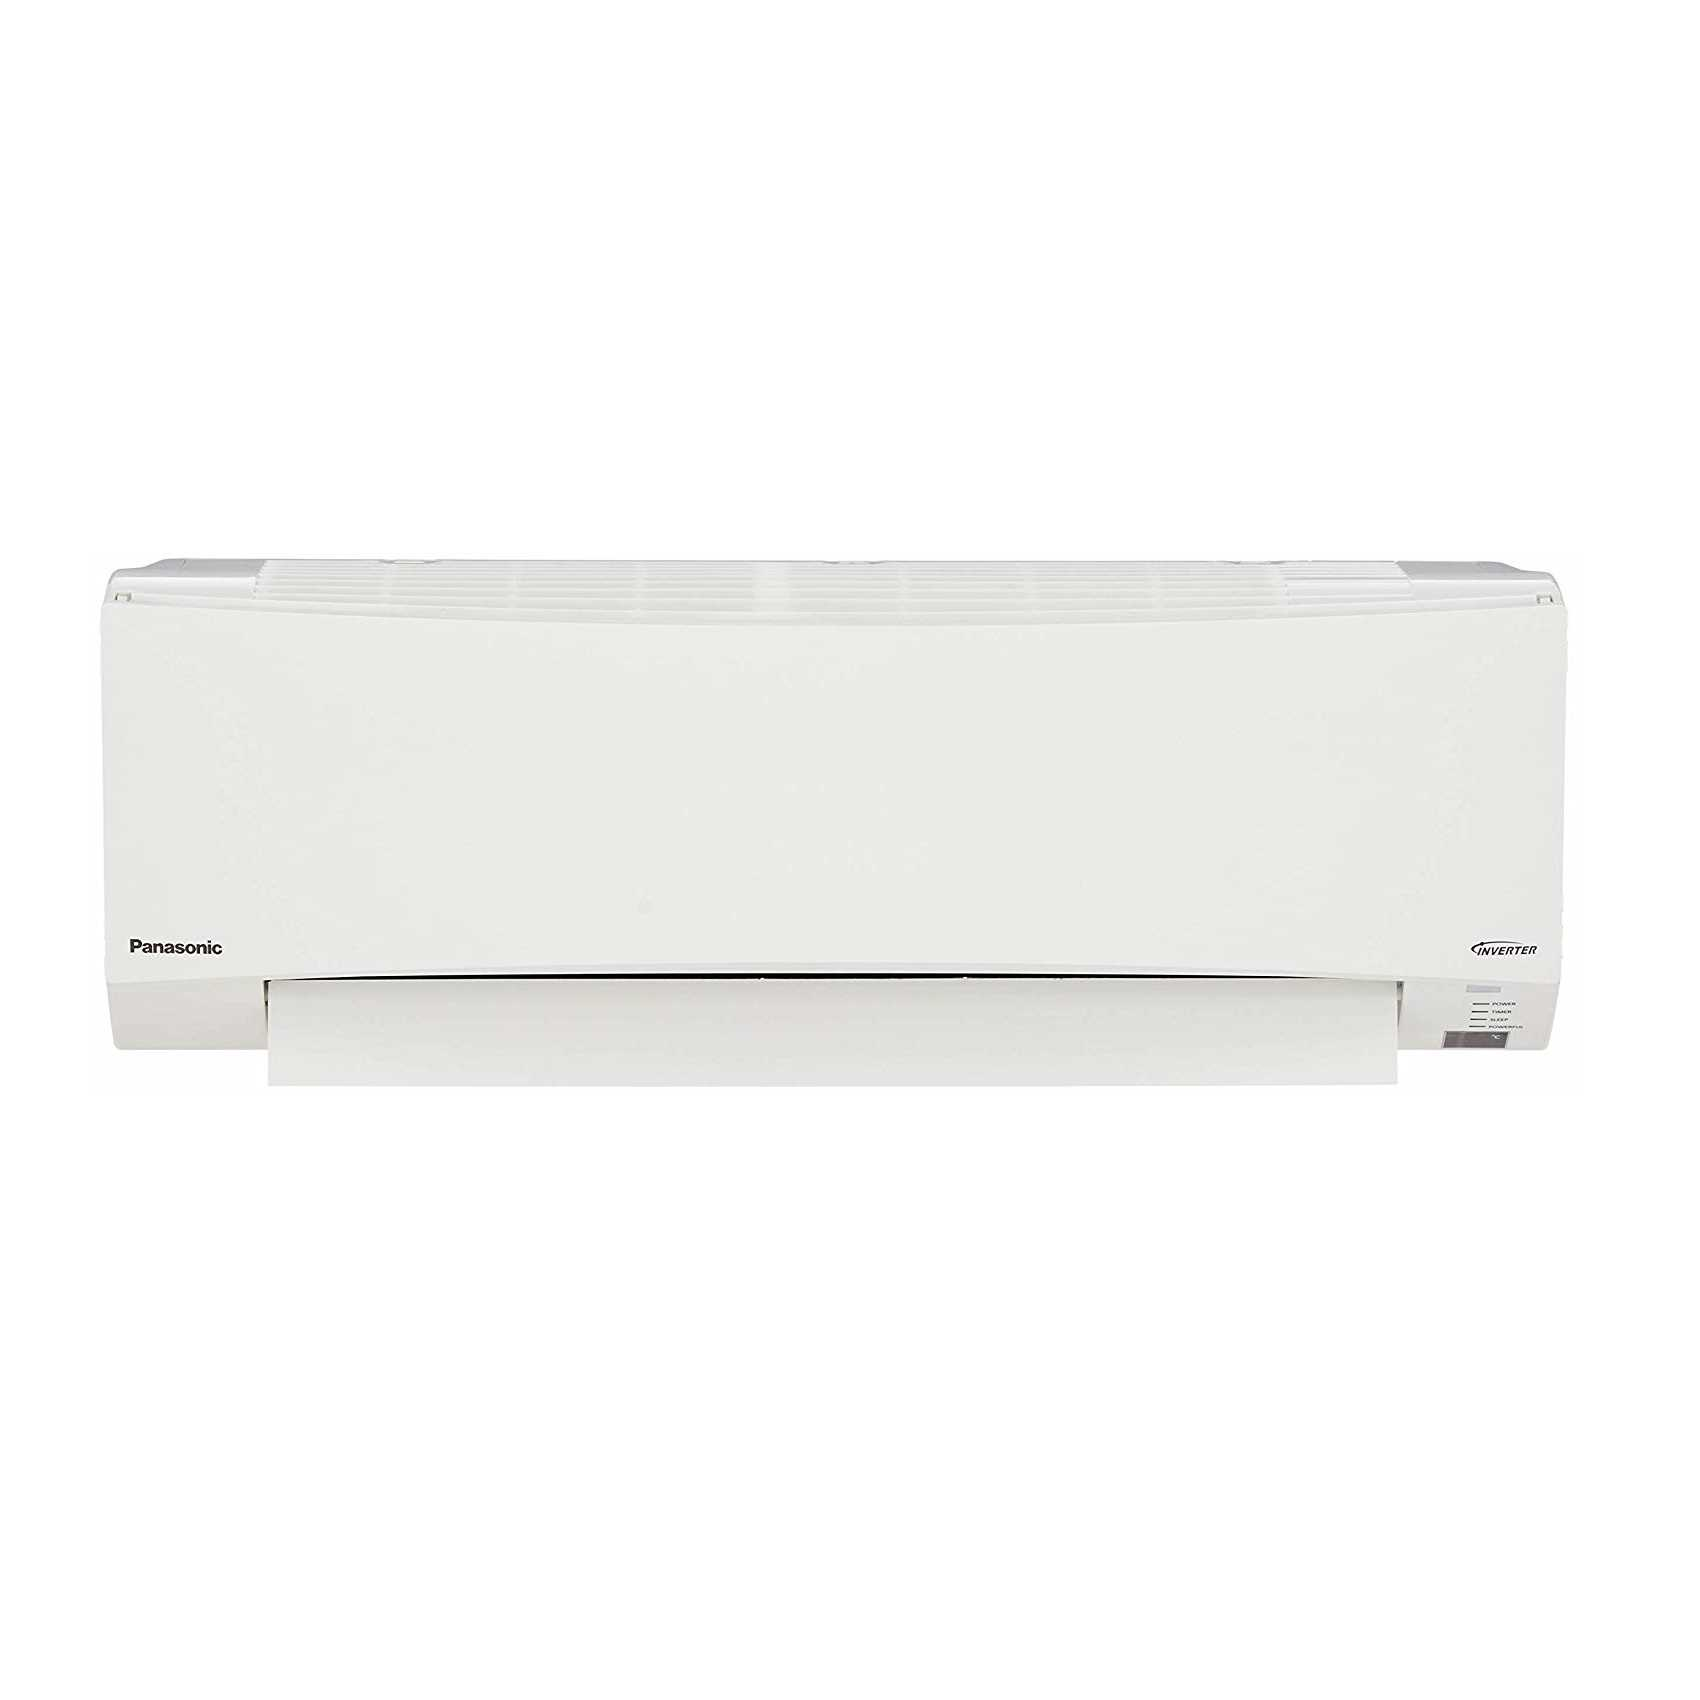 Panasonic CS CU SU12VKYW 1 Ton 3 Star Inverter Split AC